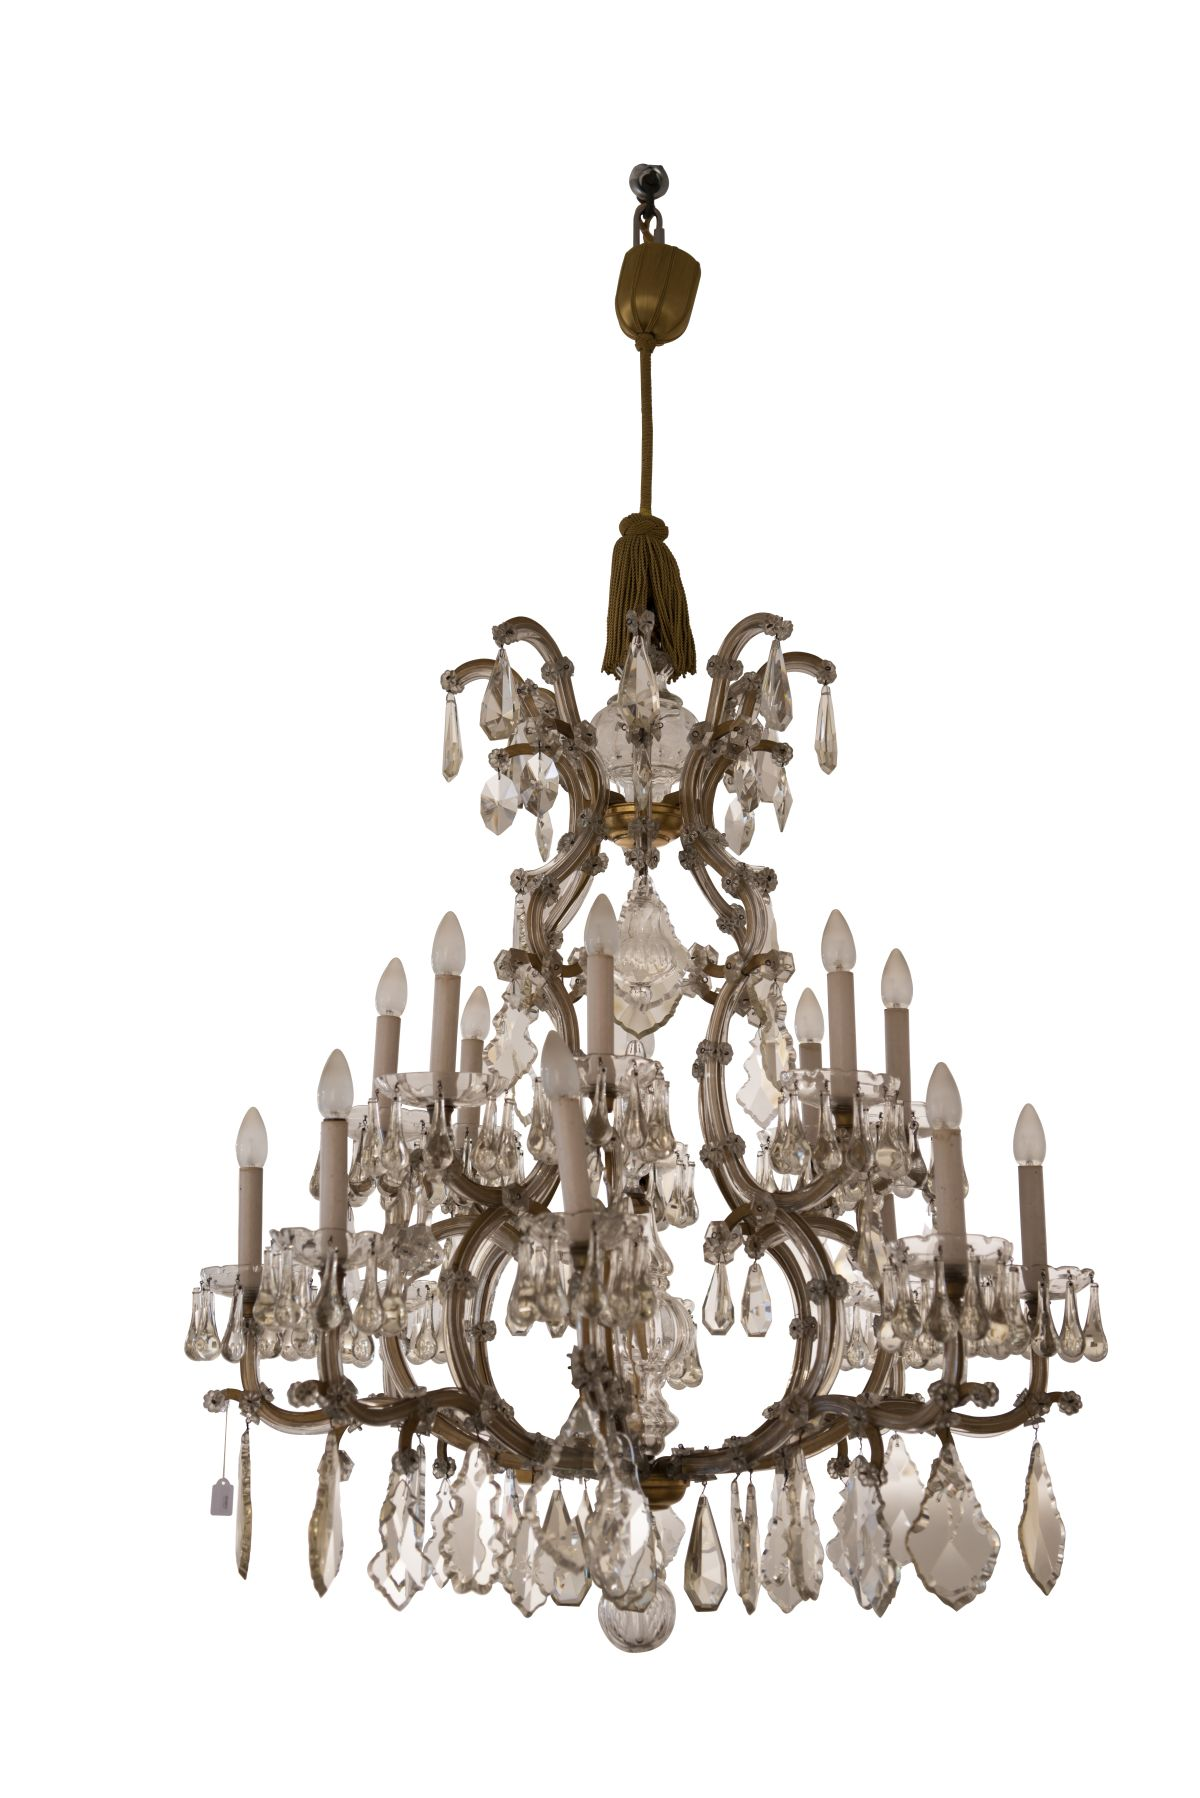 "#65 Decorative Salon Chandelier ""Maria Theresa Style"" 